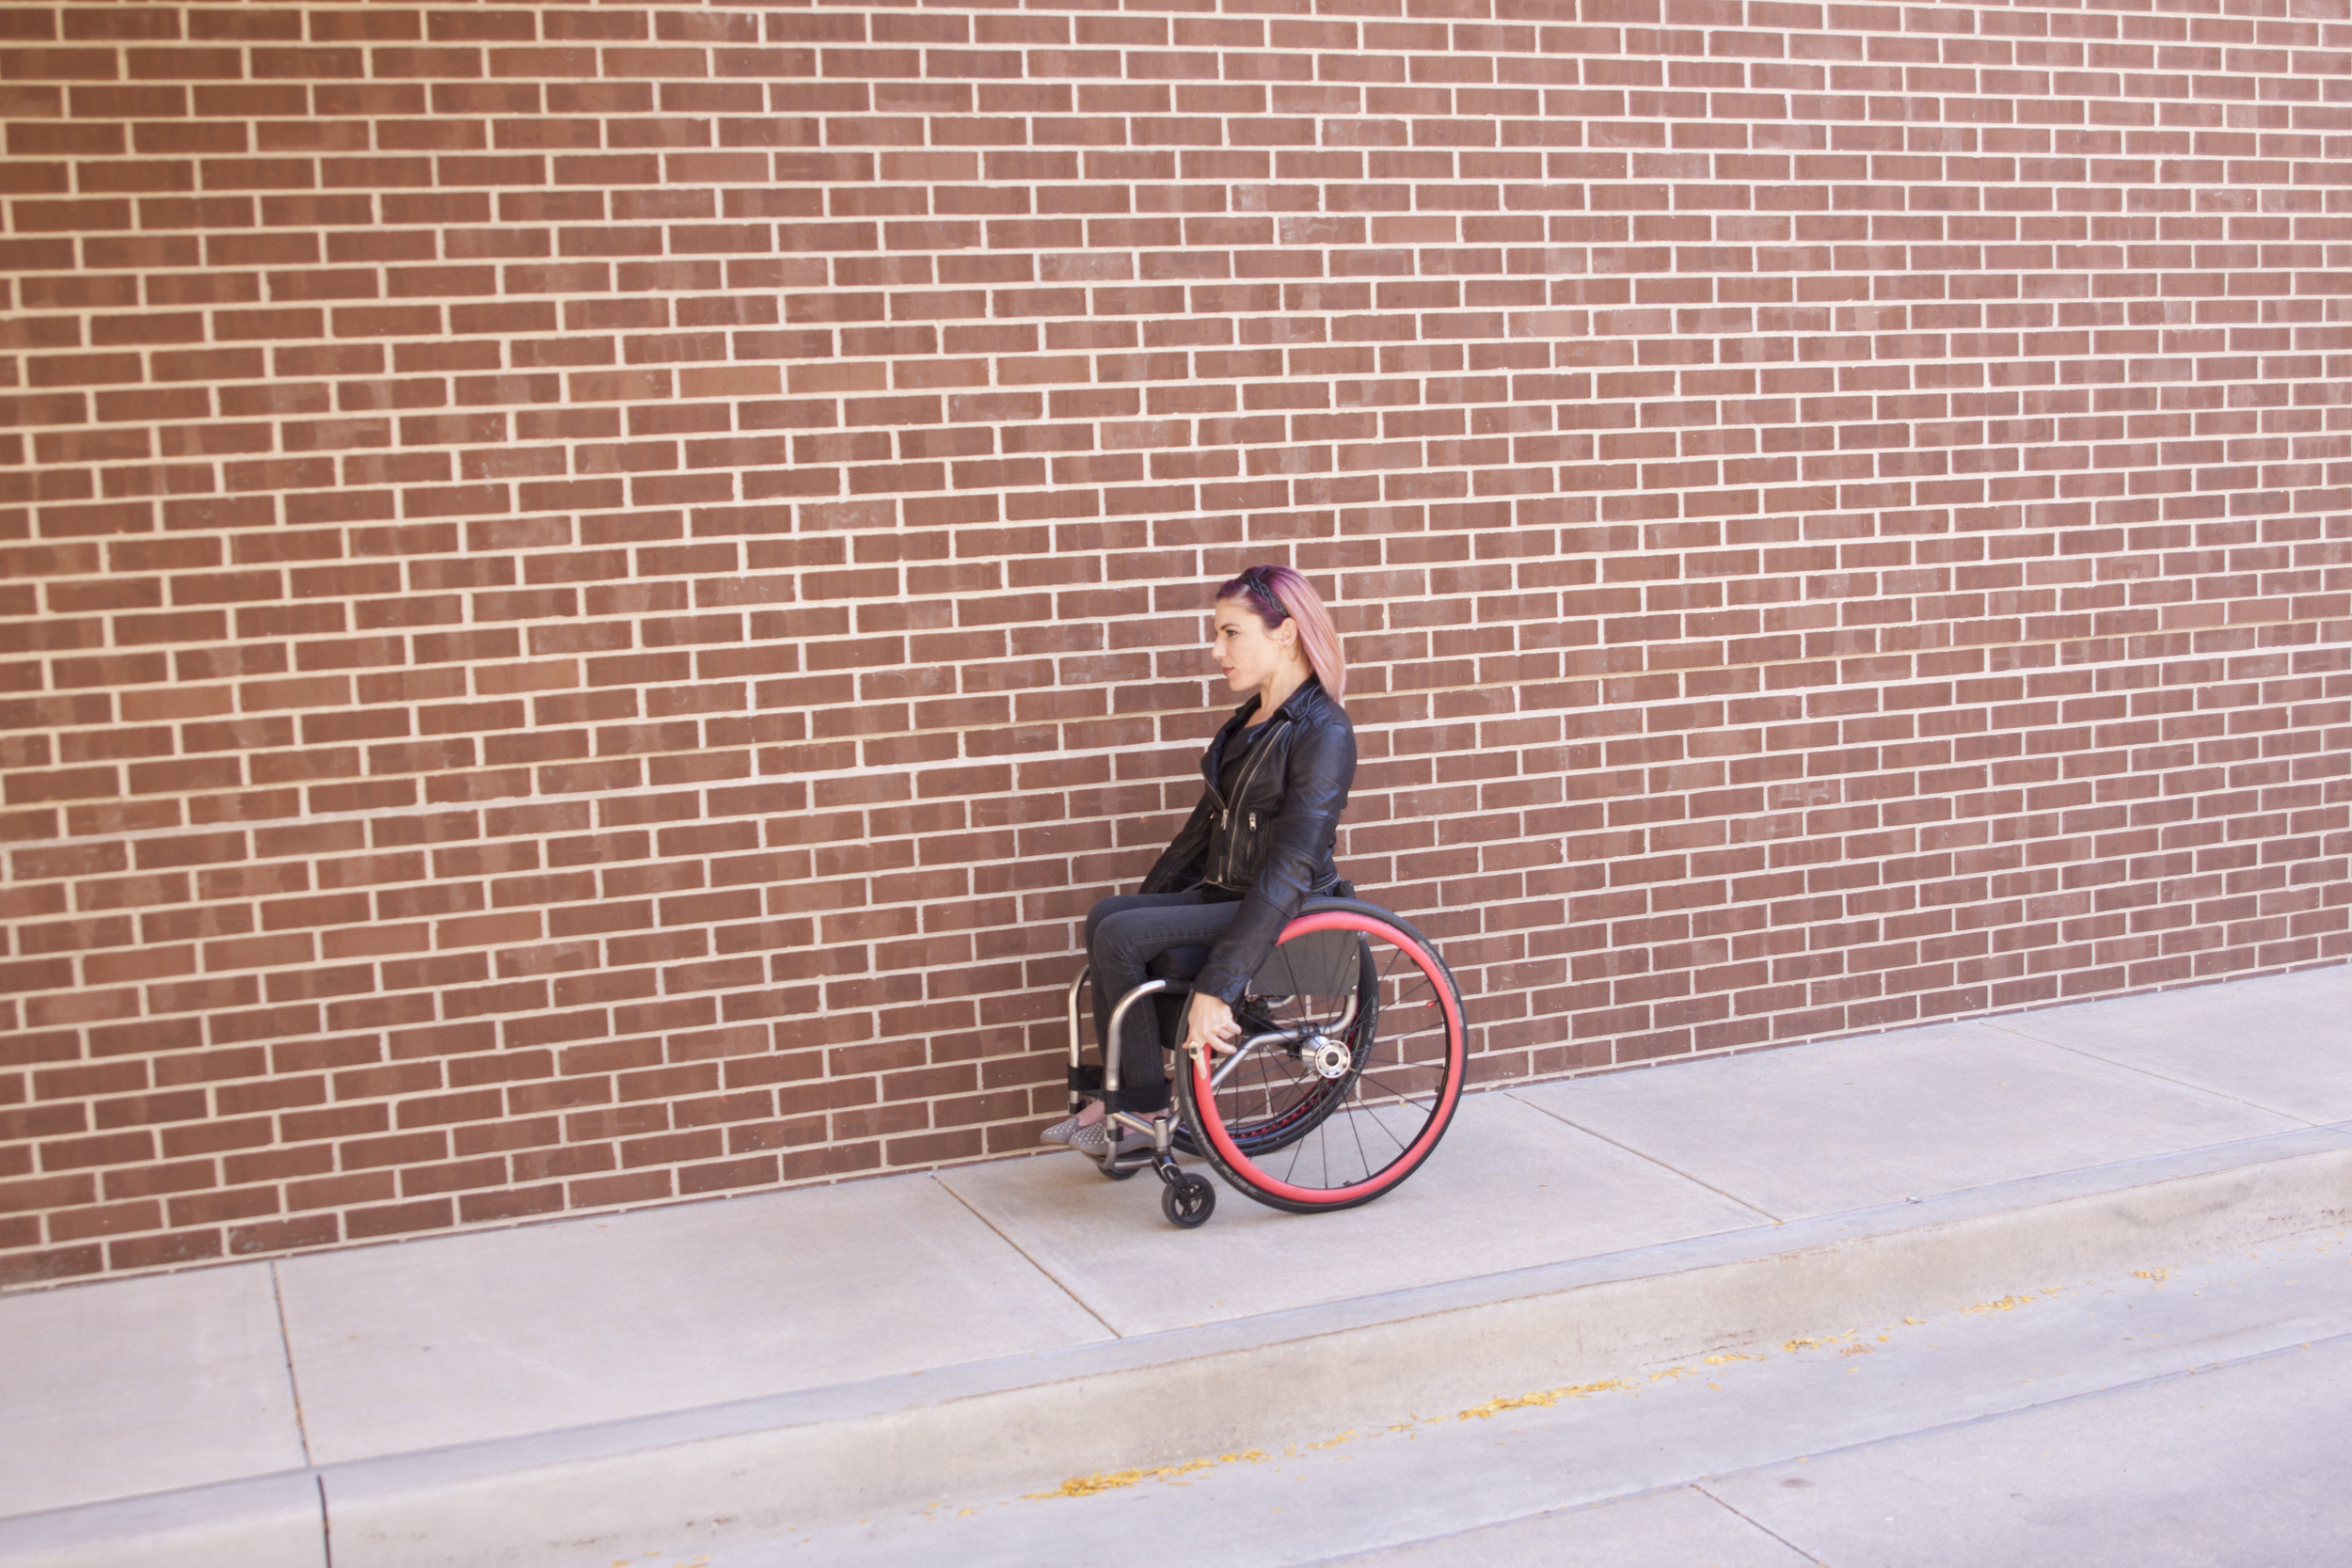 wheelchair grips plastic deck chairs target fit intelliwheels designed to your hand and budget are perfect for anyone looking push their with more comfort ease